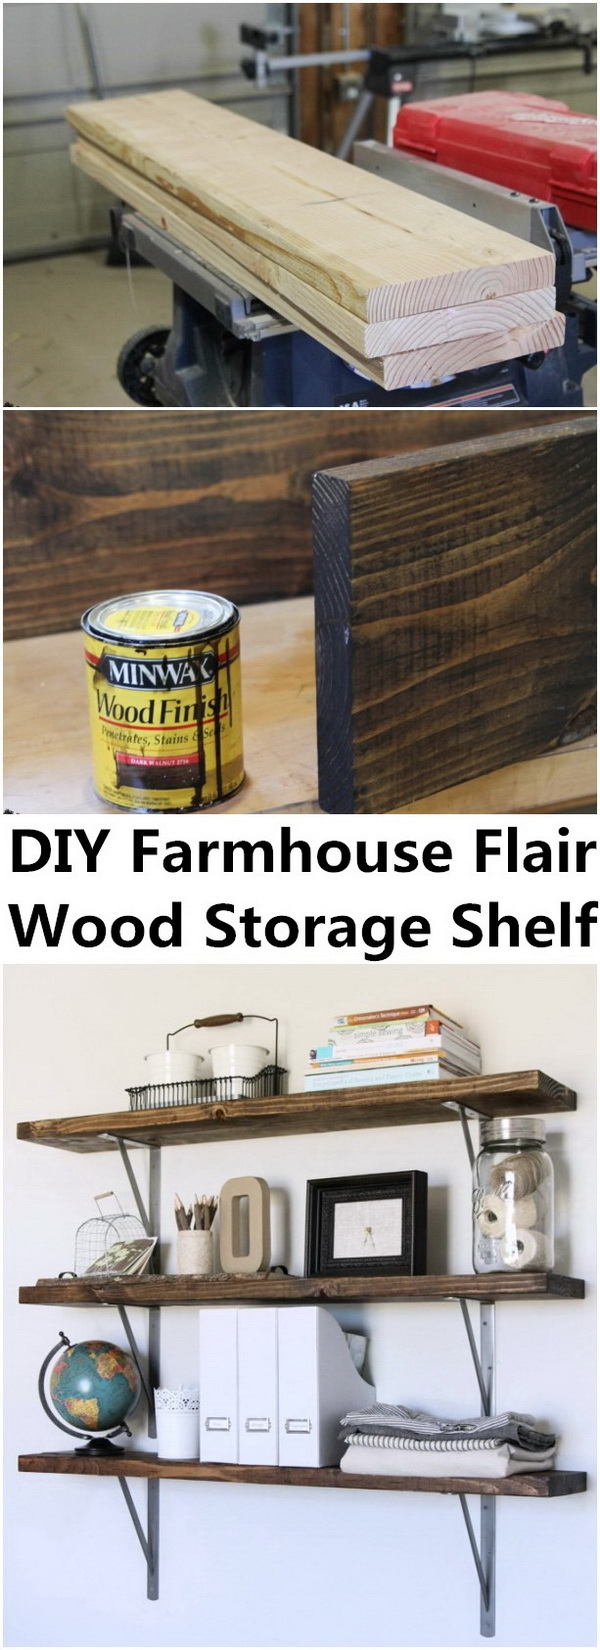 Farmhouse Flair DIY Wood Storage Shelf.